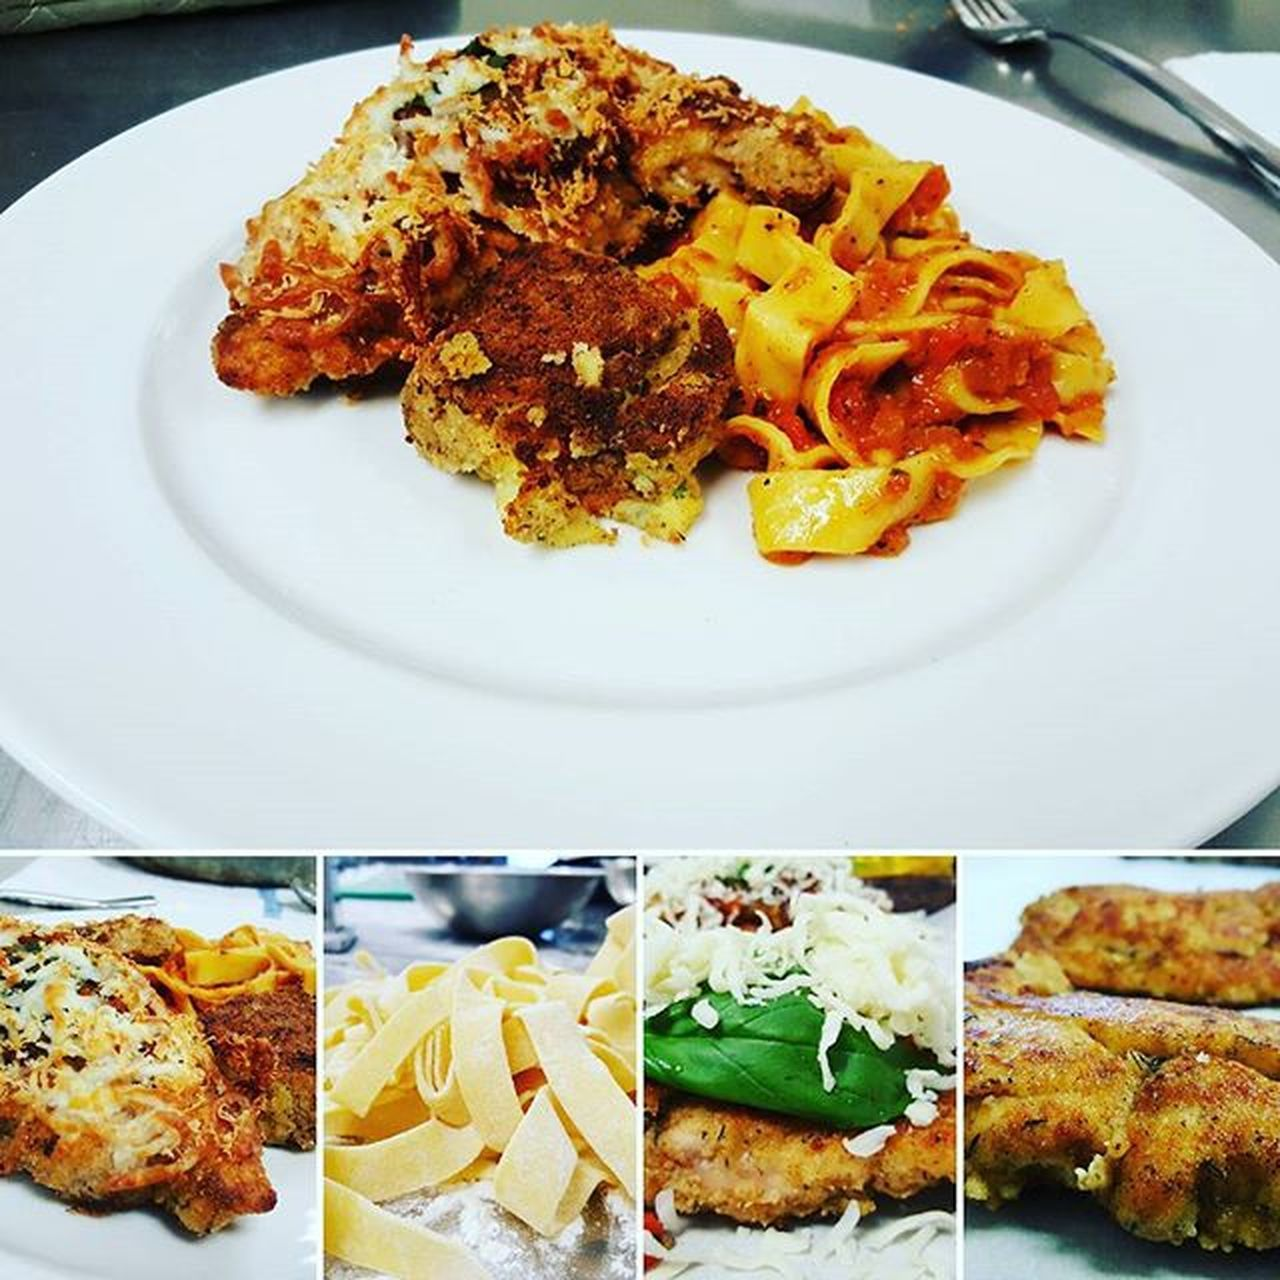 ♡Chicken parm♡ ♧fettuccine tomato sauce and on side potatoes♧ Chickenparm Chicken Tomato Basil Cheese Plate Calinary Rich Taste Yummy